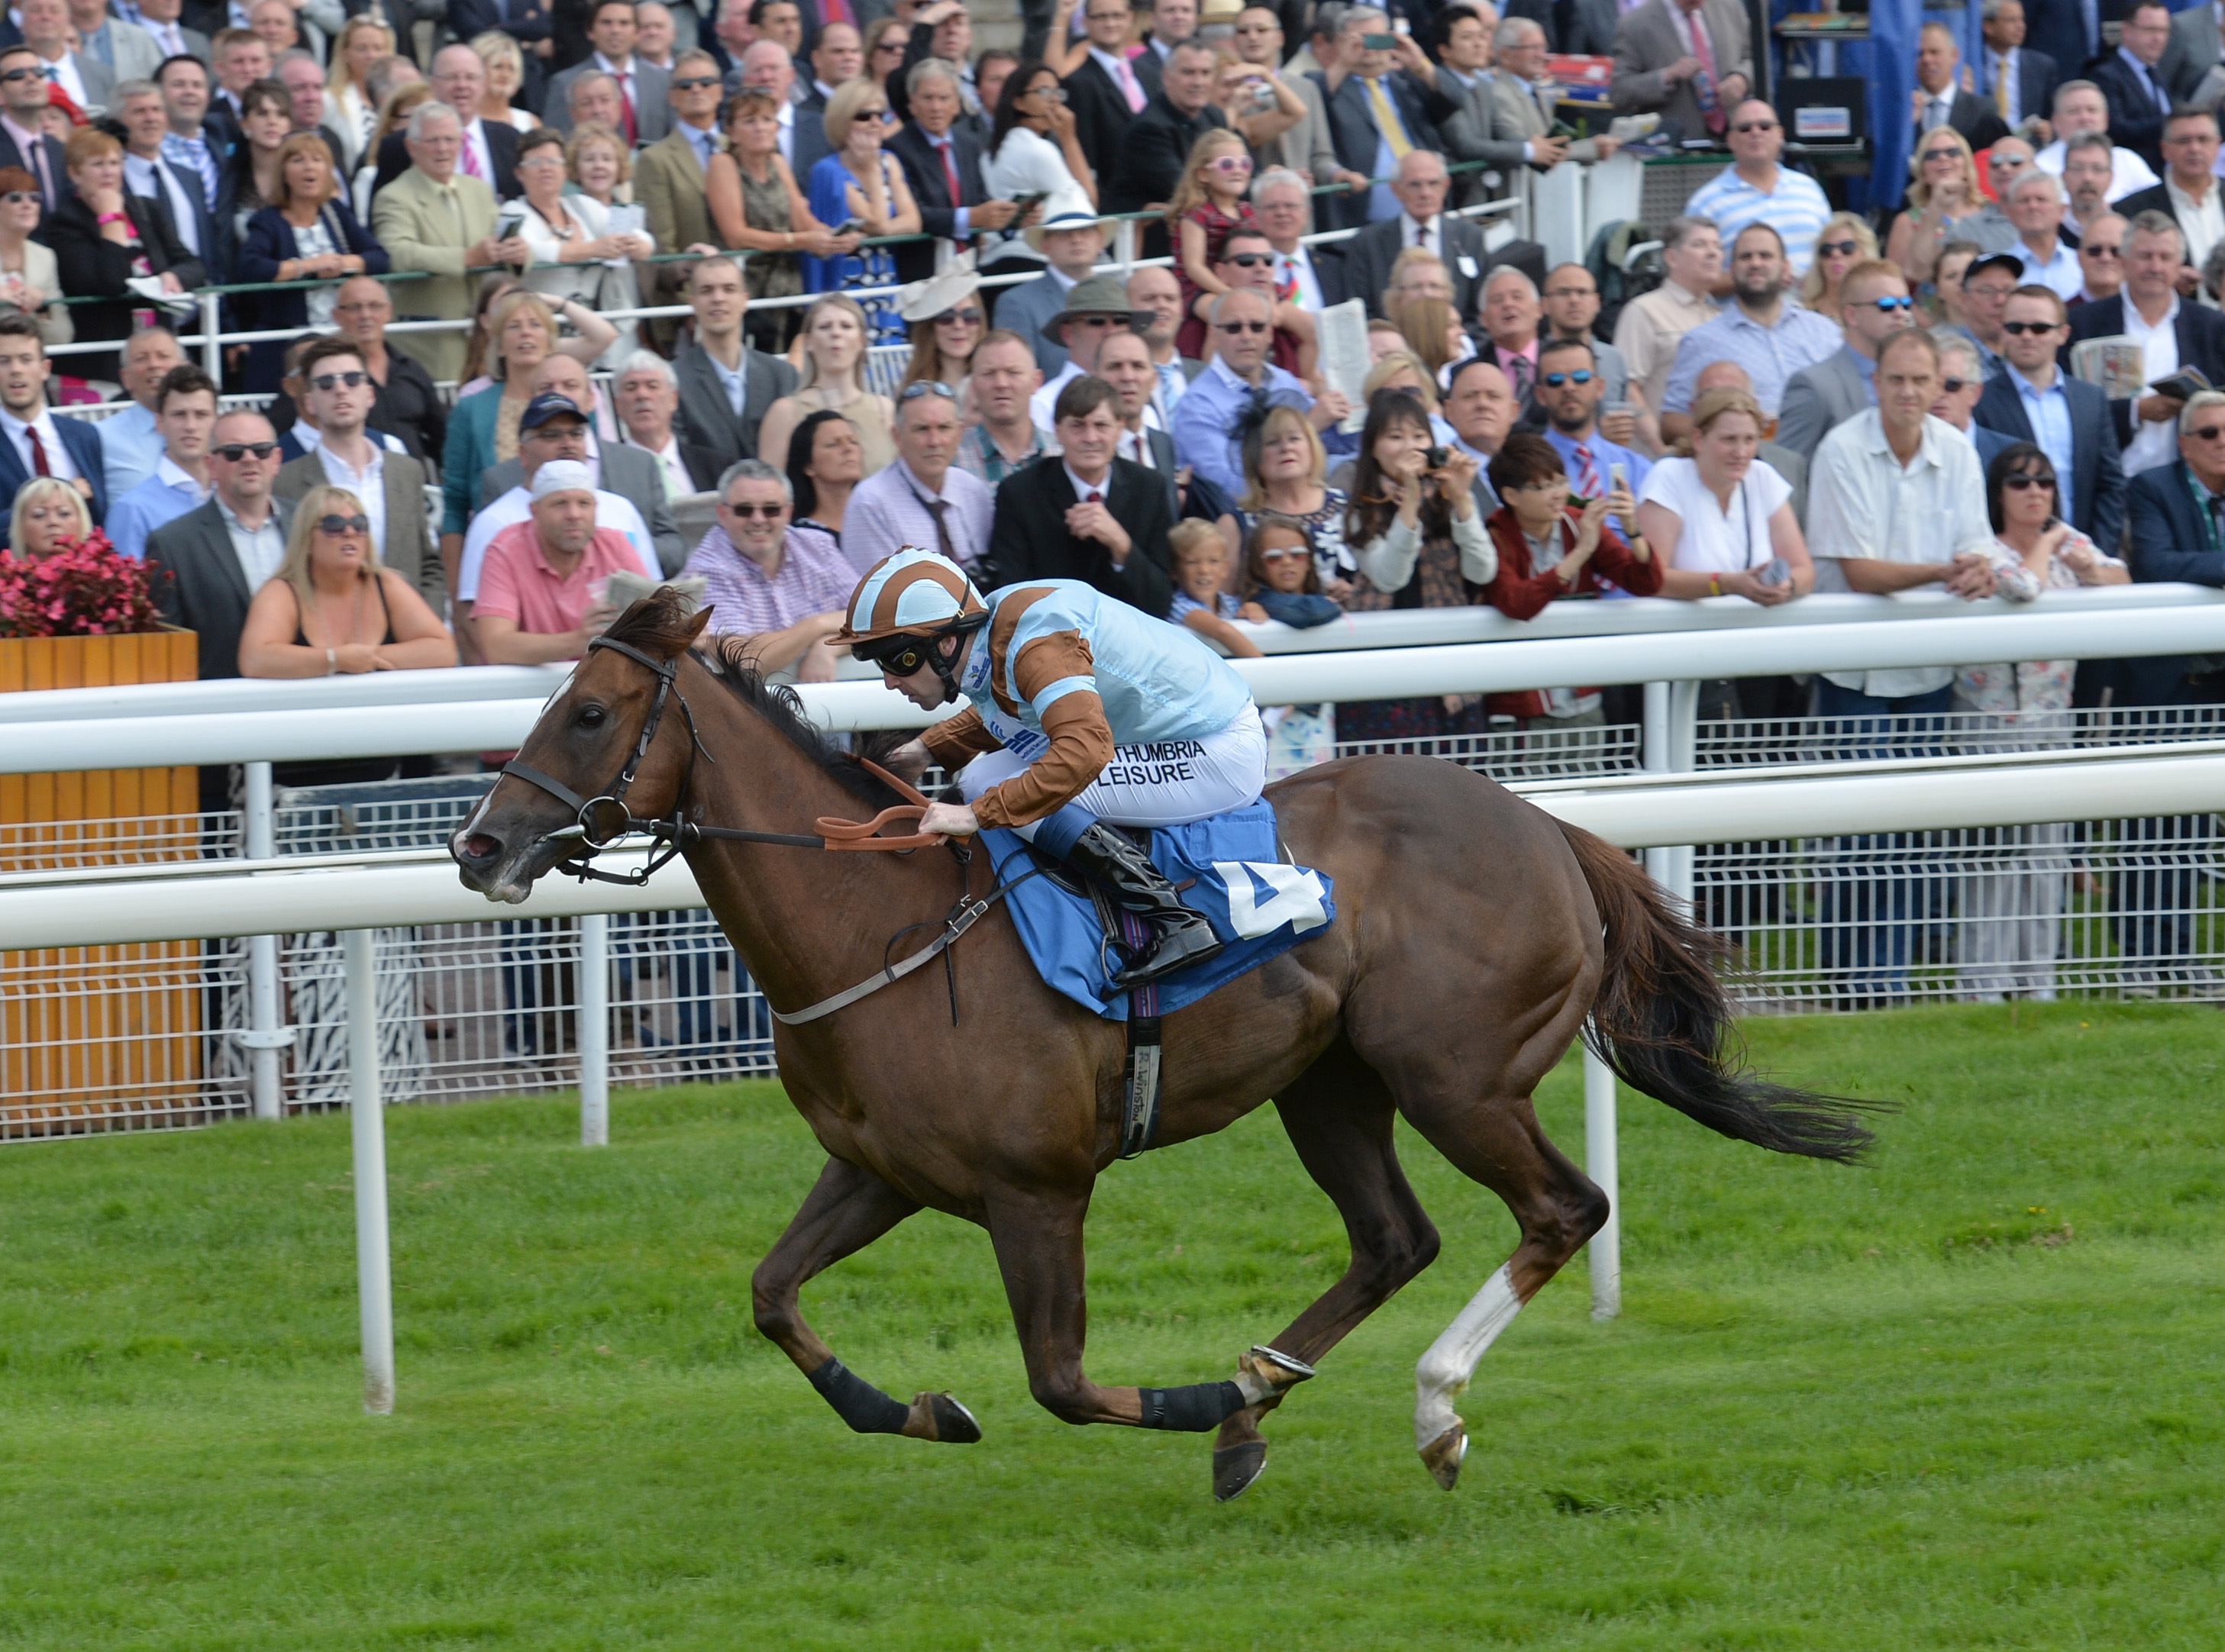 Horse Racing - Welcome to Yorkshire Ebor Festival - Day One - York Racecourse